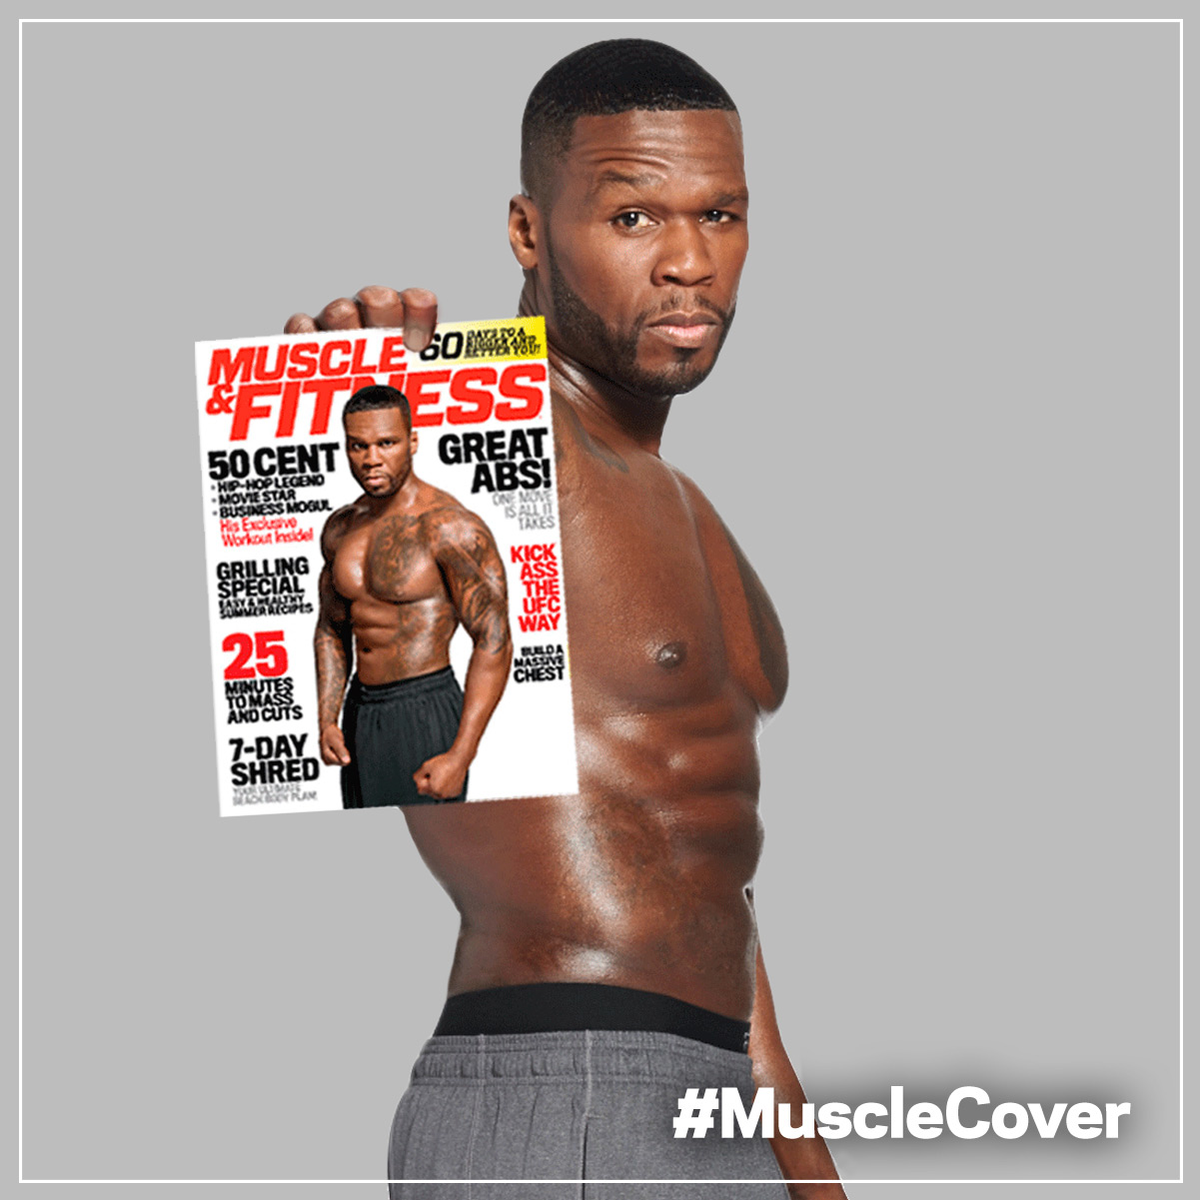 RT @muscle_fitness: Want a chance to party w/ @50Cent? Grab our July/Aug issue & tweet us a selfie using #MuscleCover! http://t.co/wn81XQiC…